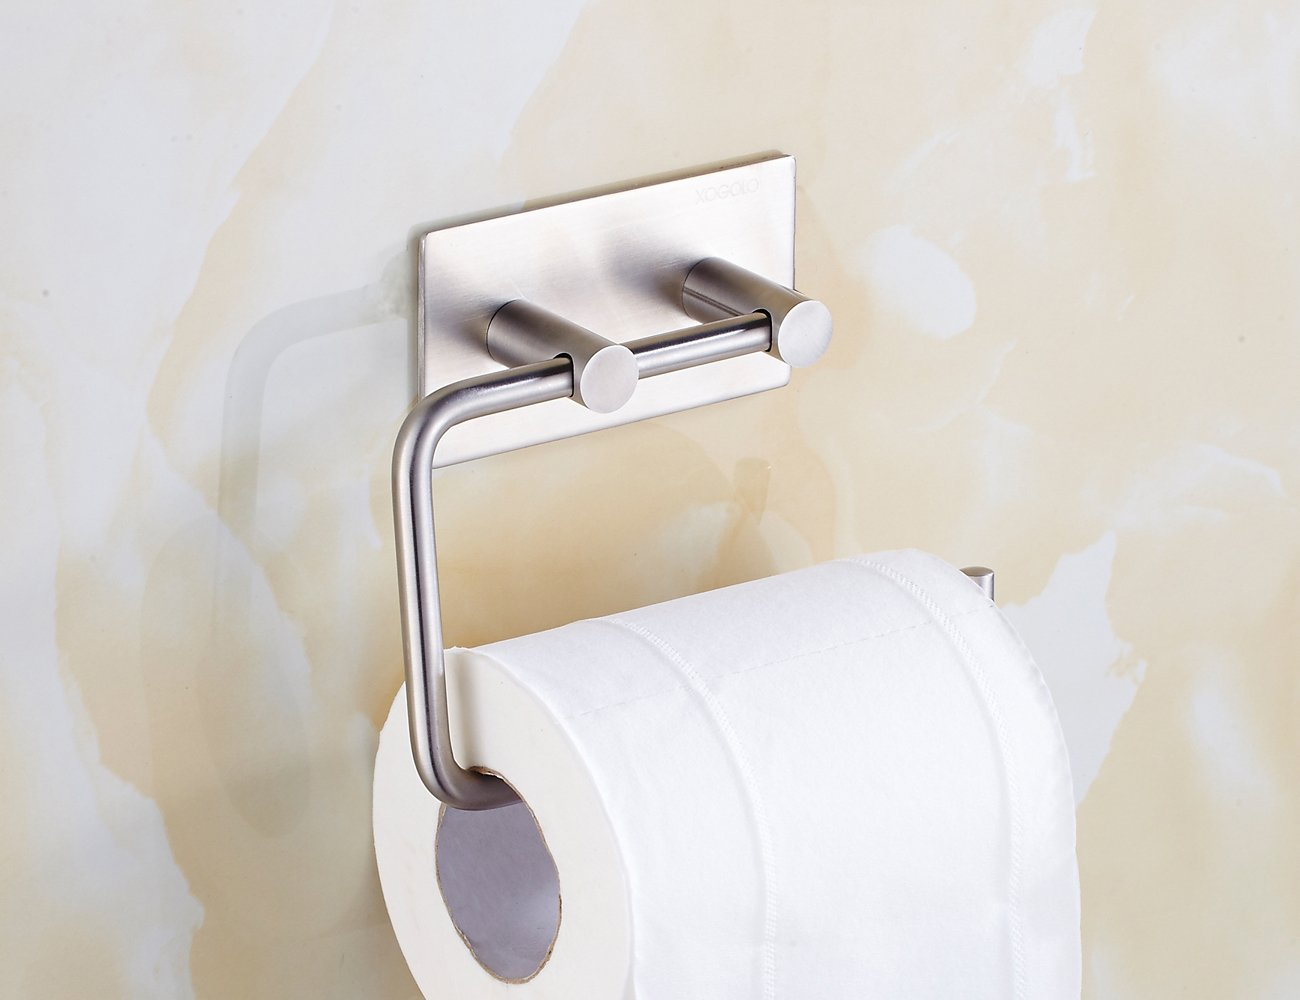 Xogolo Self Adhesive Toilet Paper Holder Wall Mount, SUS 304 Stainless Steel, Kitchen Bathroom Towel Dispenser 3M Stick, Brushed Finished